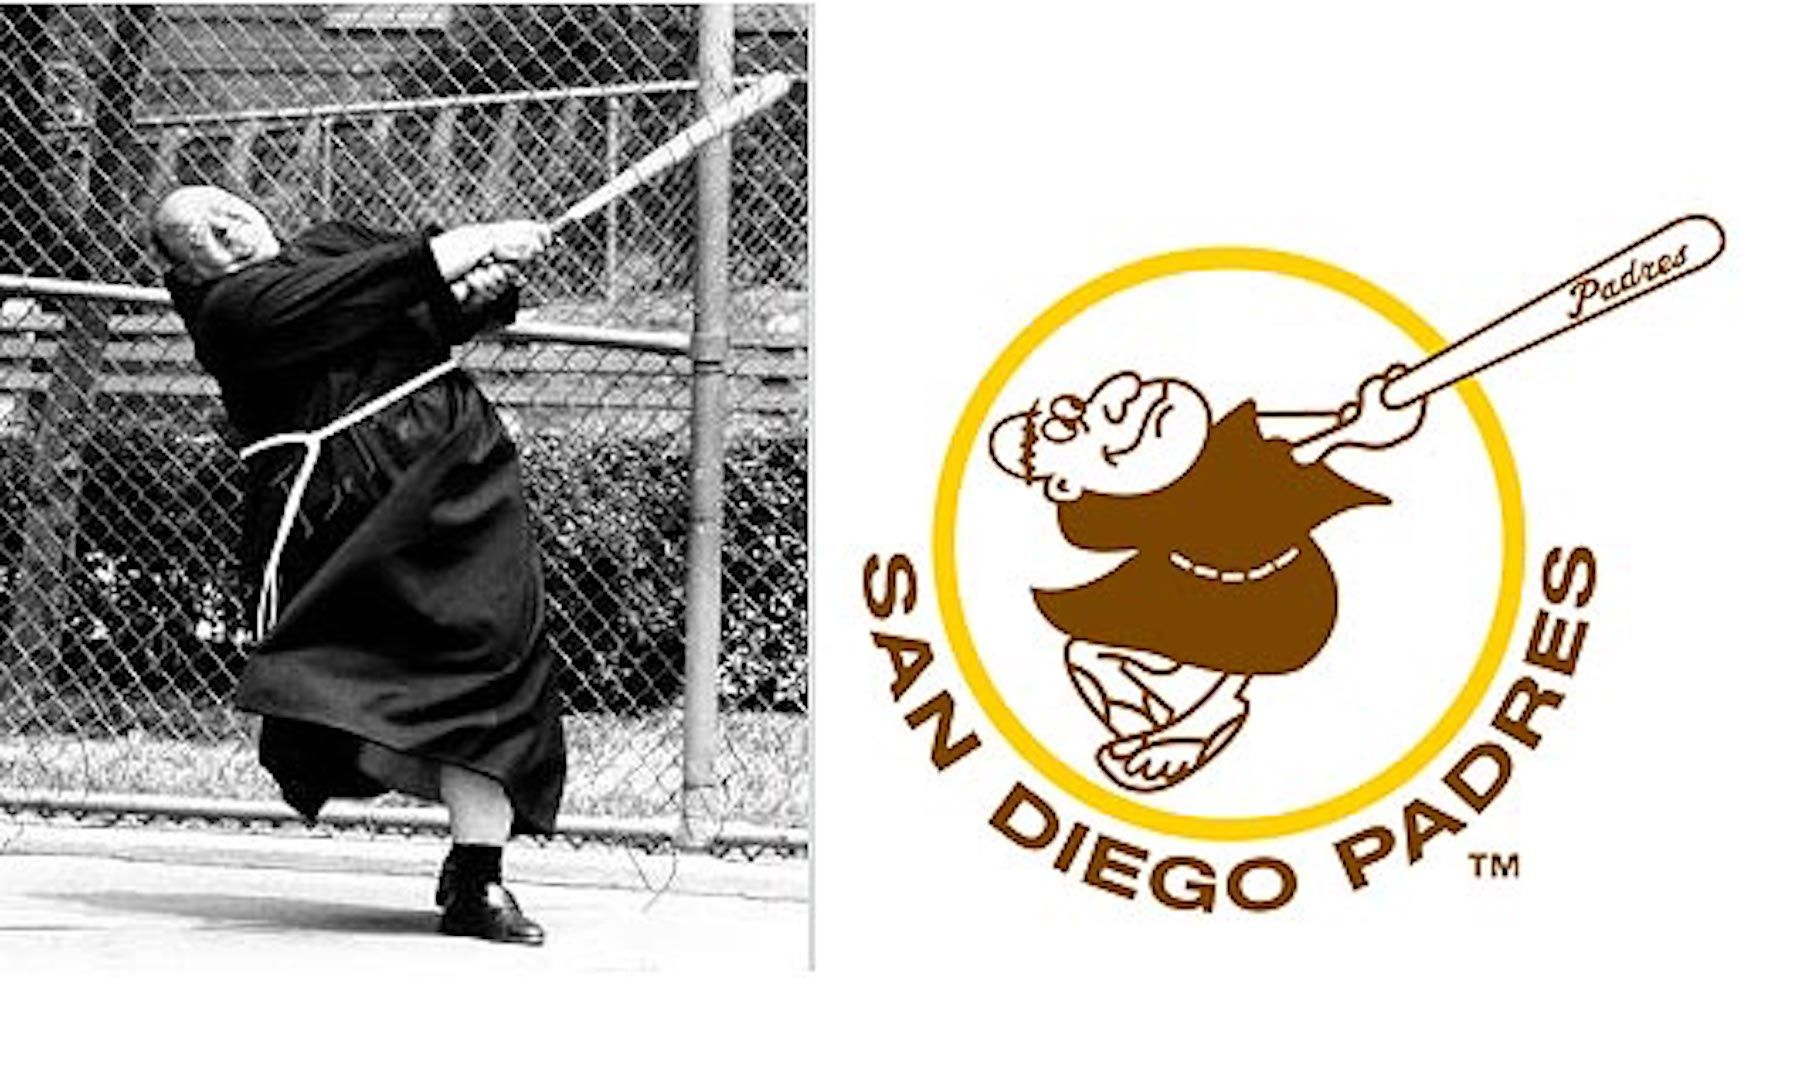 Padres Old Logo - Callaway pimps San Diego Padres stadium - GolfPunkHQ